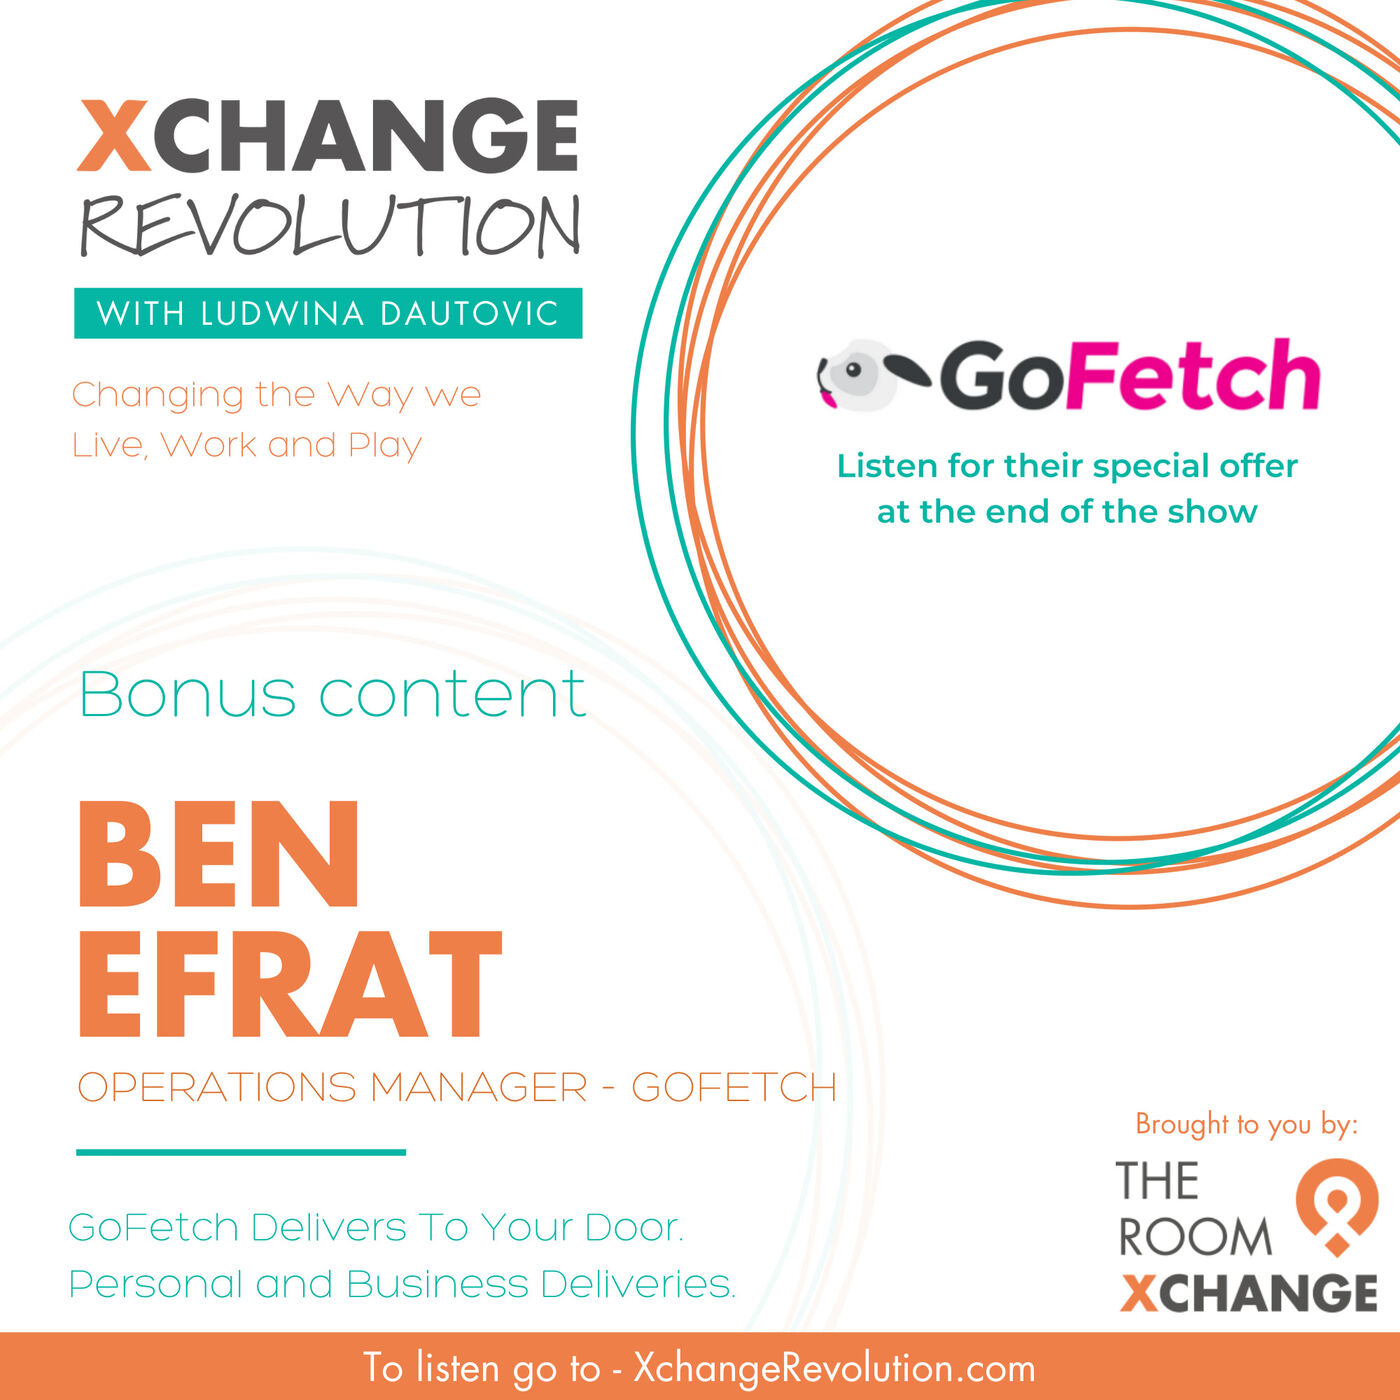 GoFetch Delivers To Your Door - Personal or Business Deliveries